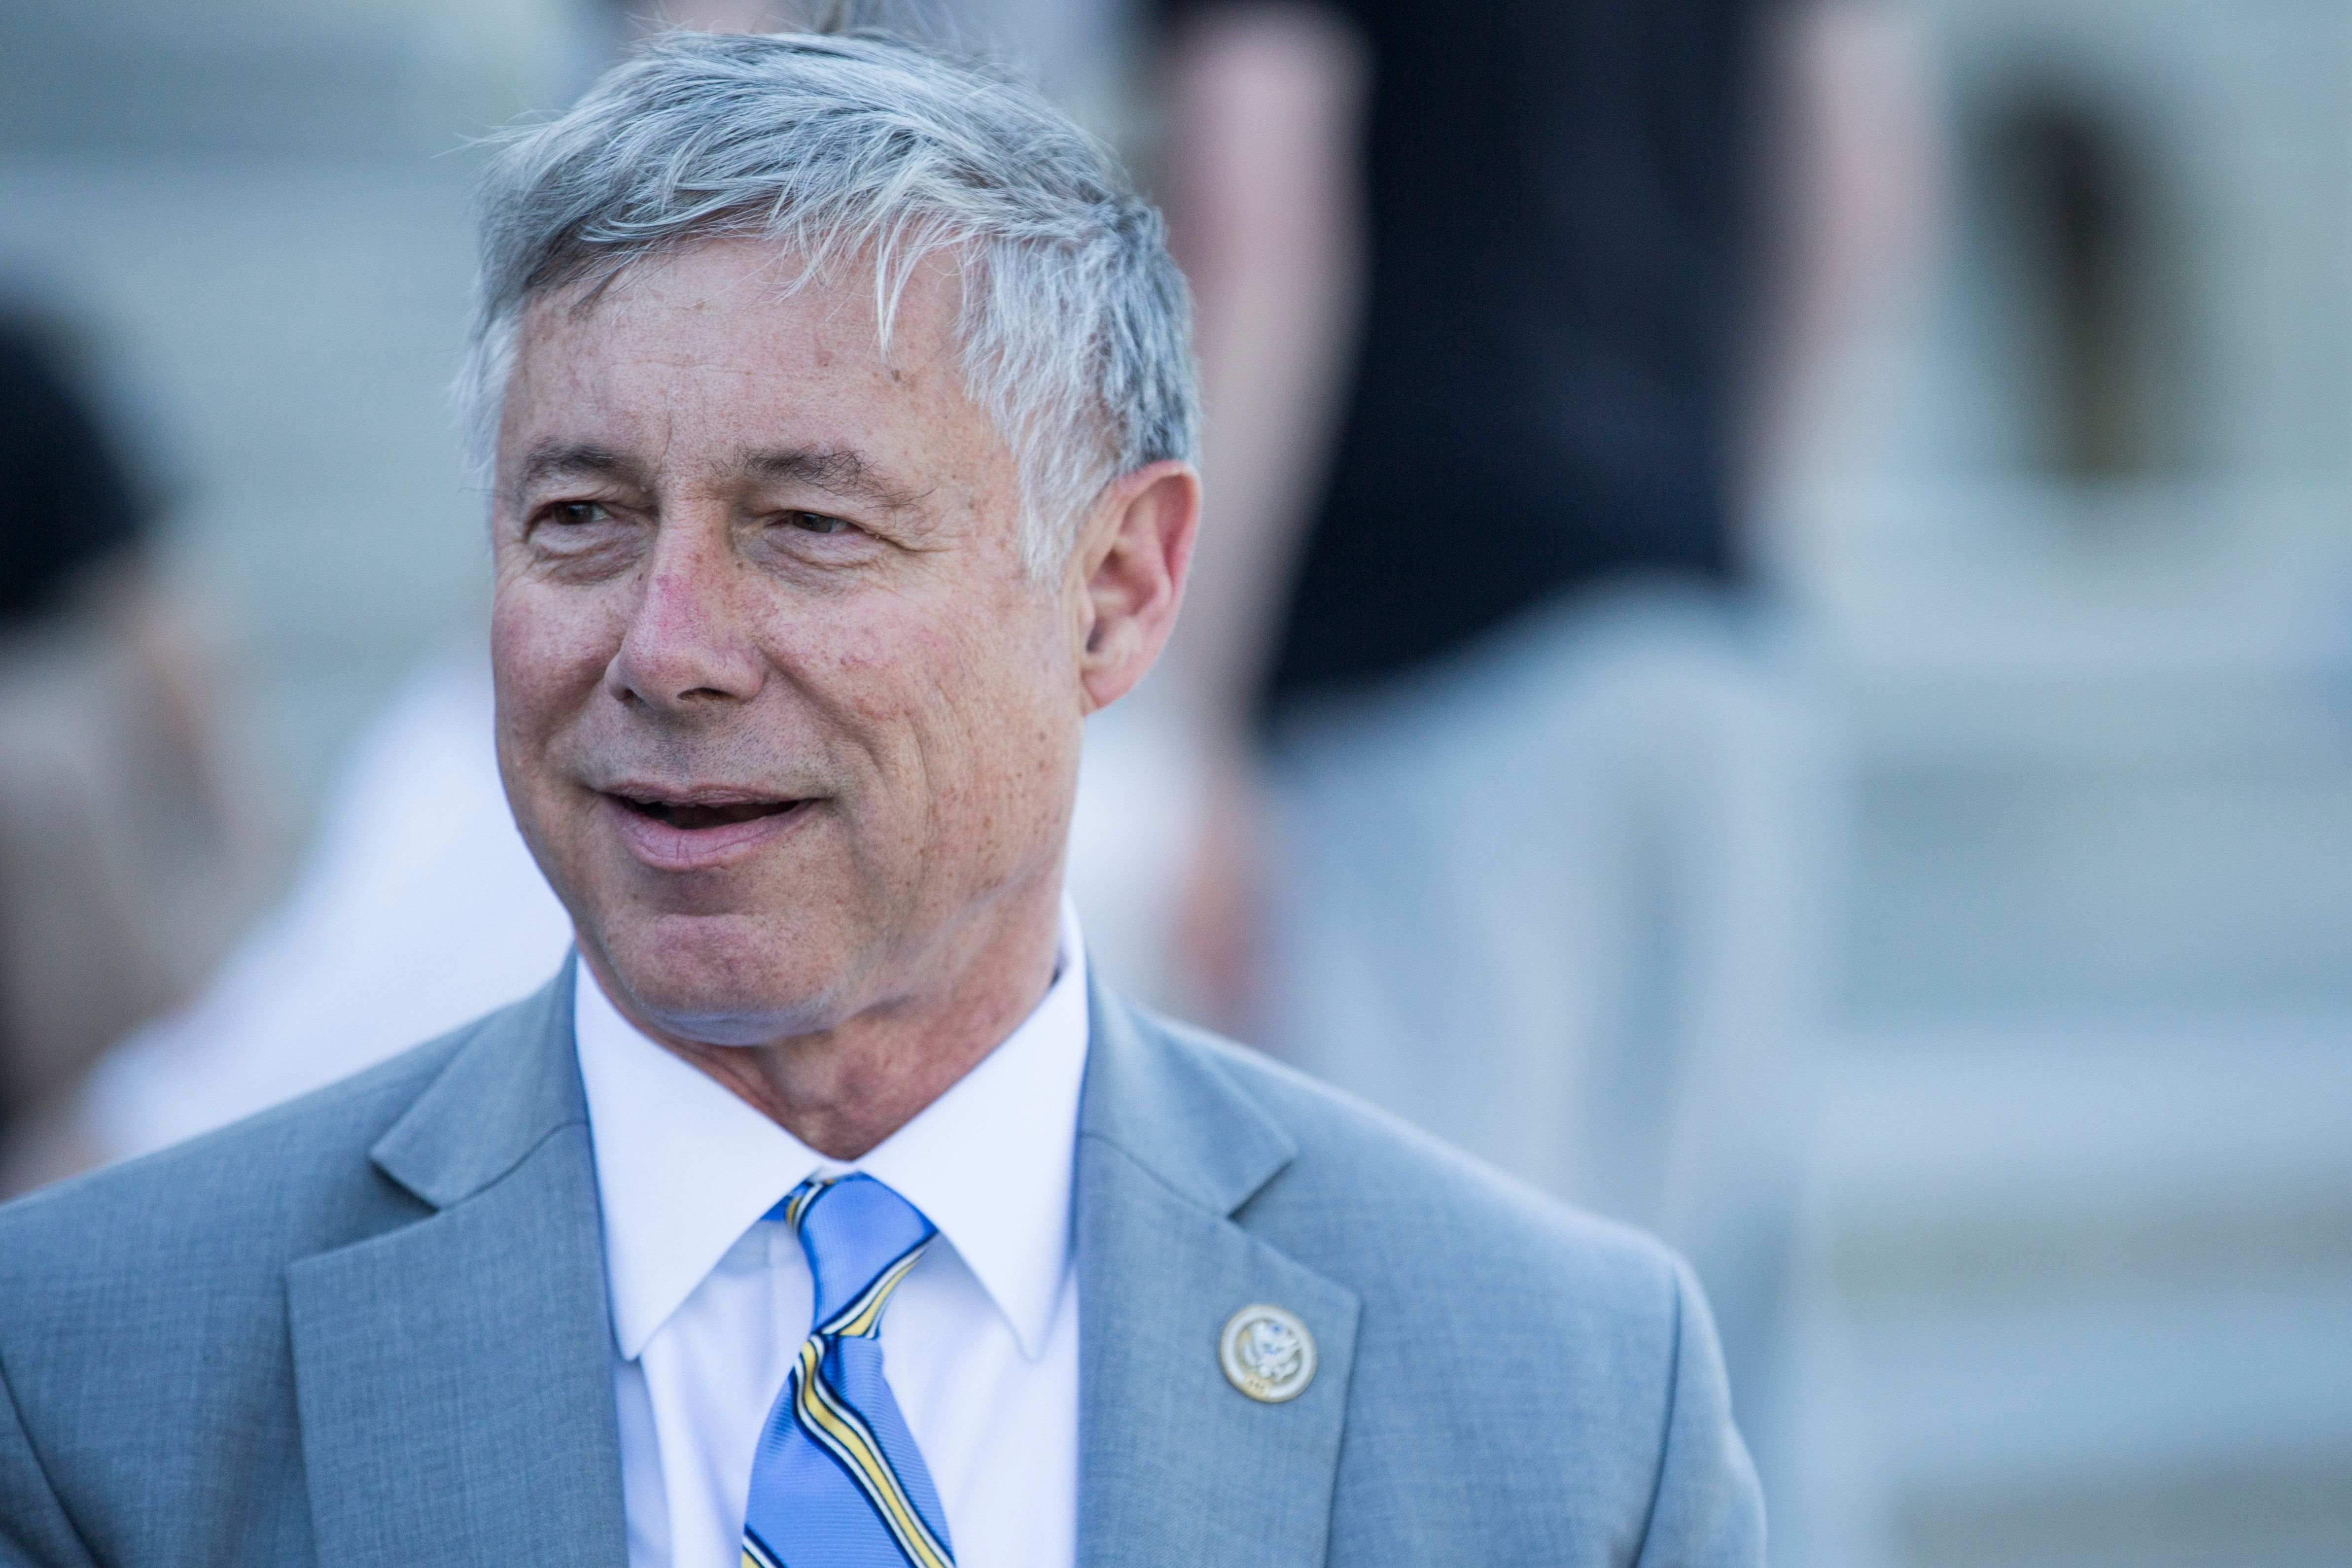 GOP Rep. Fred Upton played a leading role in crafting a compromise to save the GOP's efforts to repeal Obamacare.